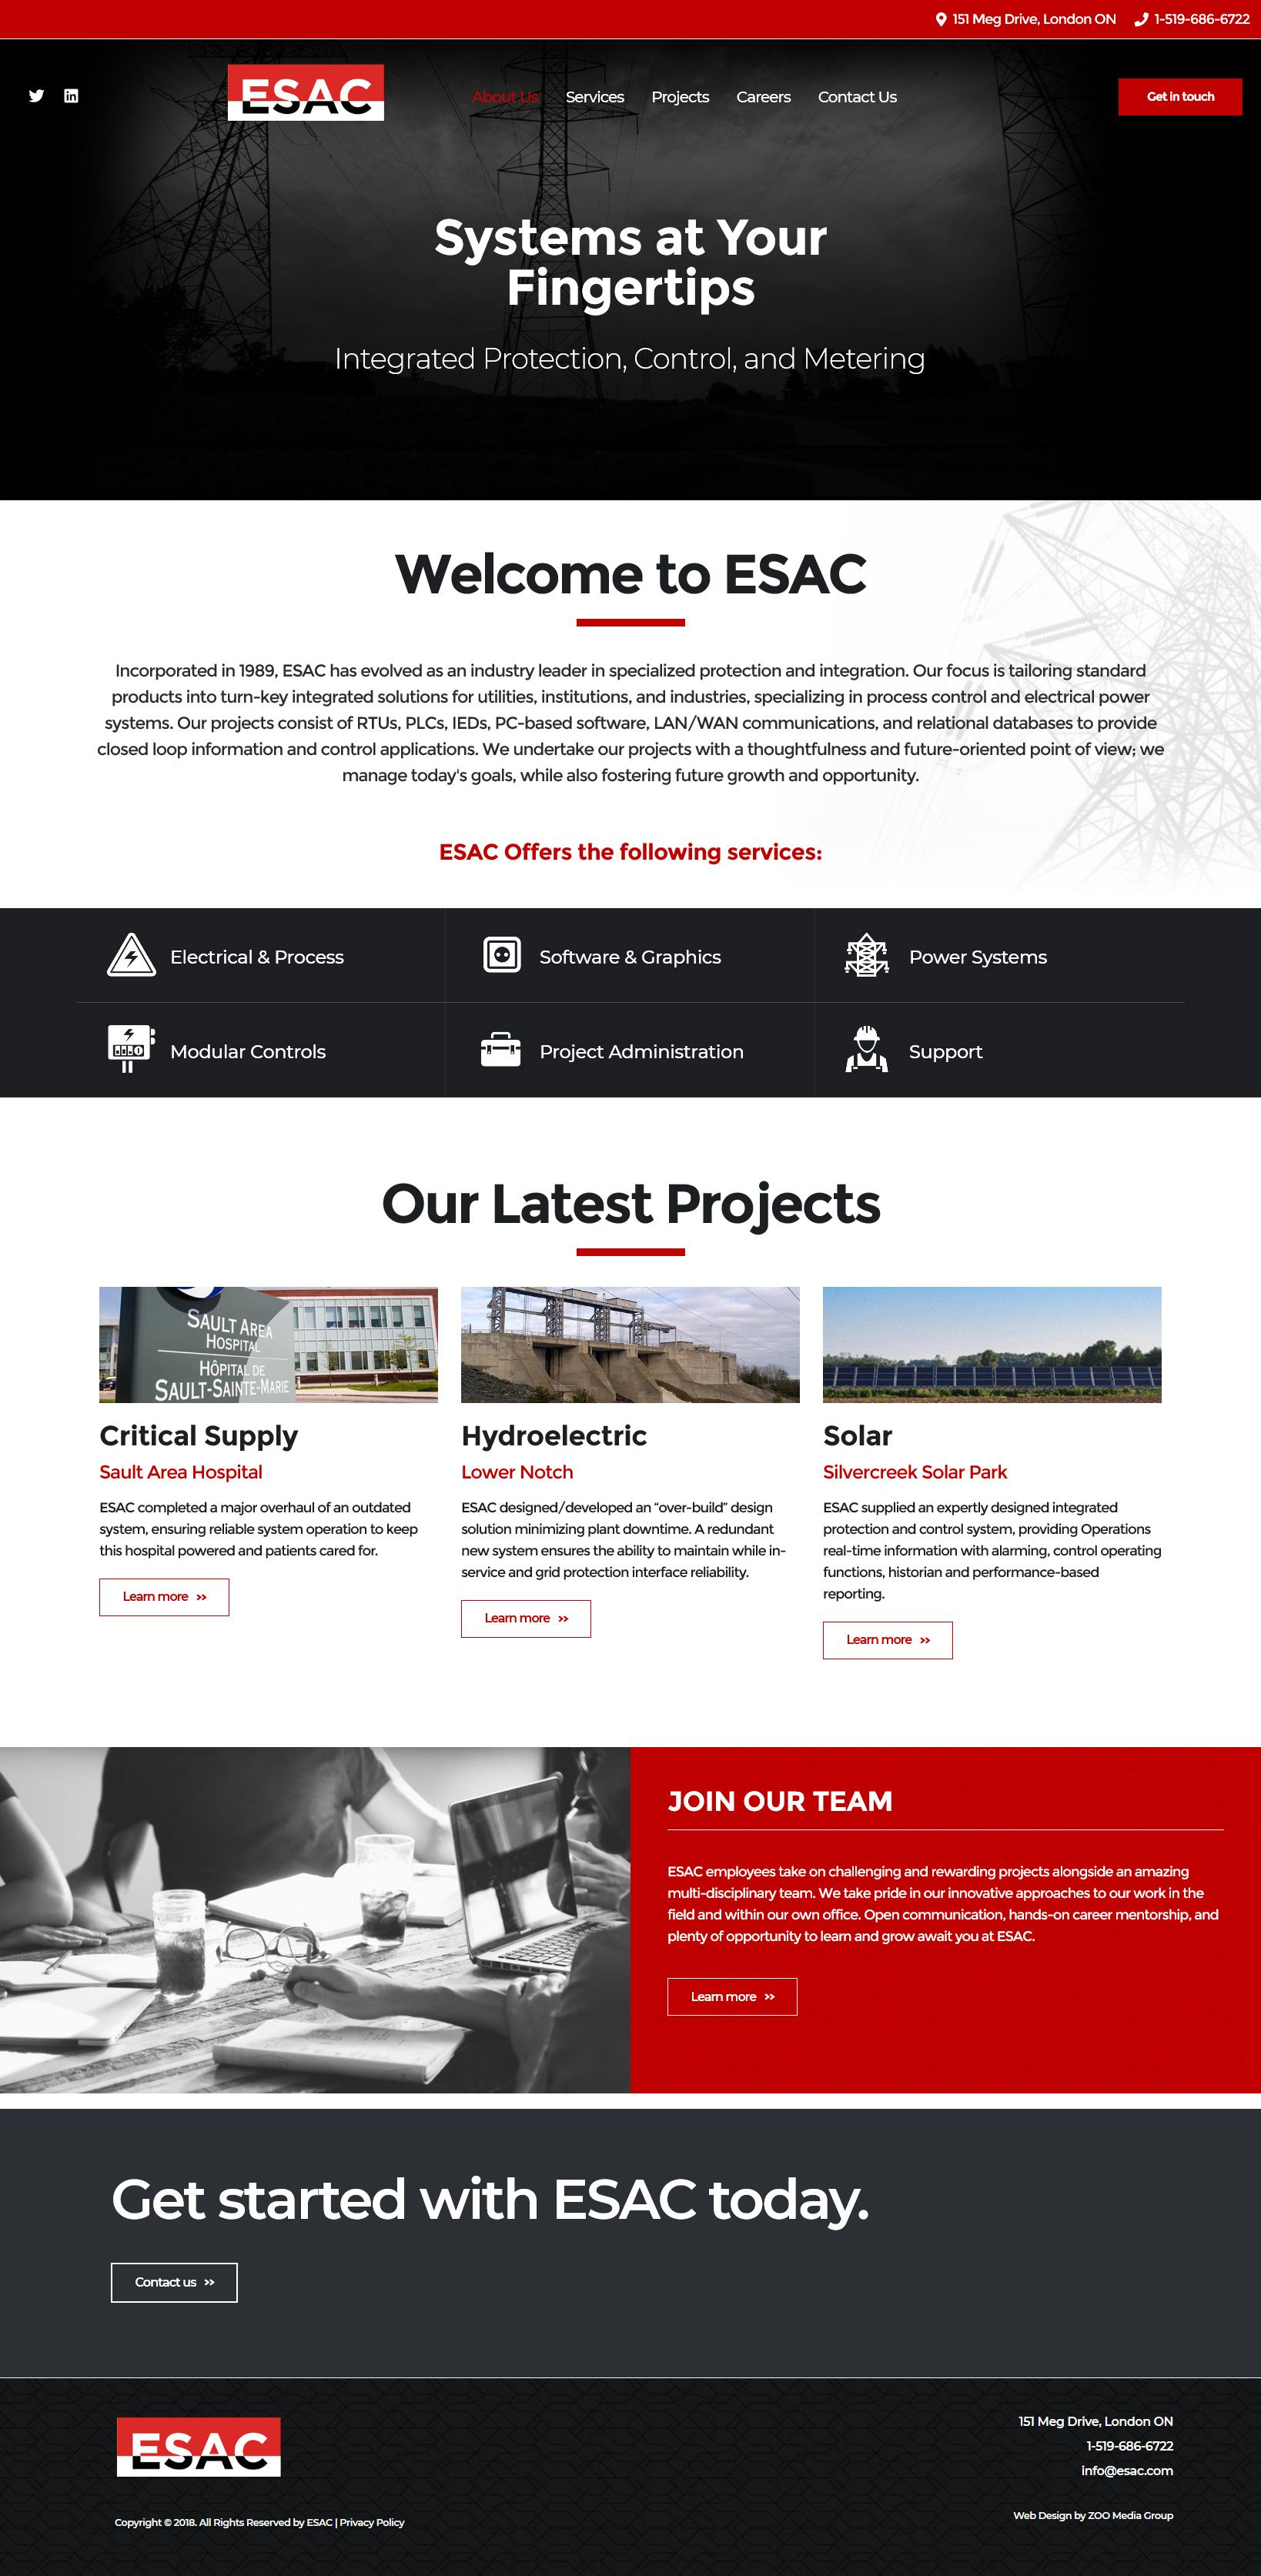 Zoo Had The Pleasure Of Working With Esac To Design Their New Scrolling Html5 Custom Website Black Red In 2020 Website Design Website Design Inspiration Web Design